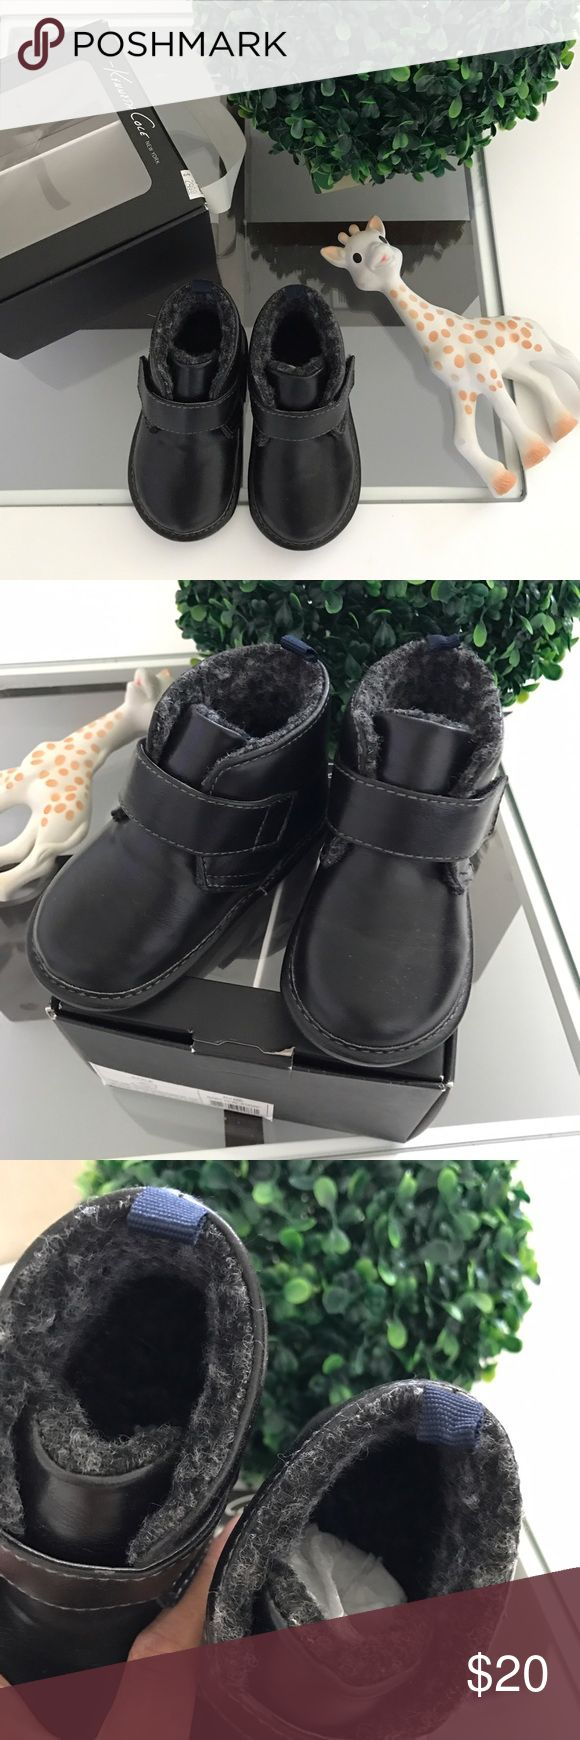 NWT Kenneth Cole baby boy  dress shoes boots sz 4 Super adorable for your lil ones dress up days! Super soft inside. Comes with orig box size 4 Kenneth Cole Shoes Dress Shoes